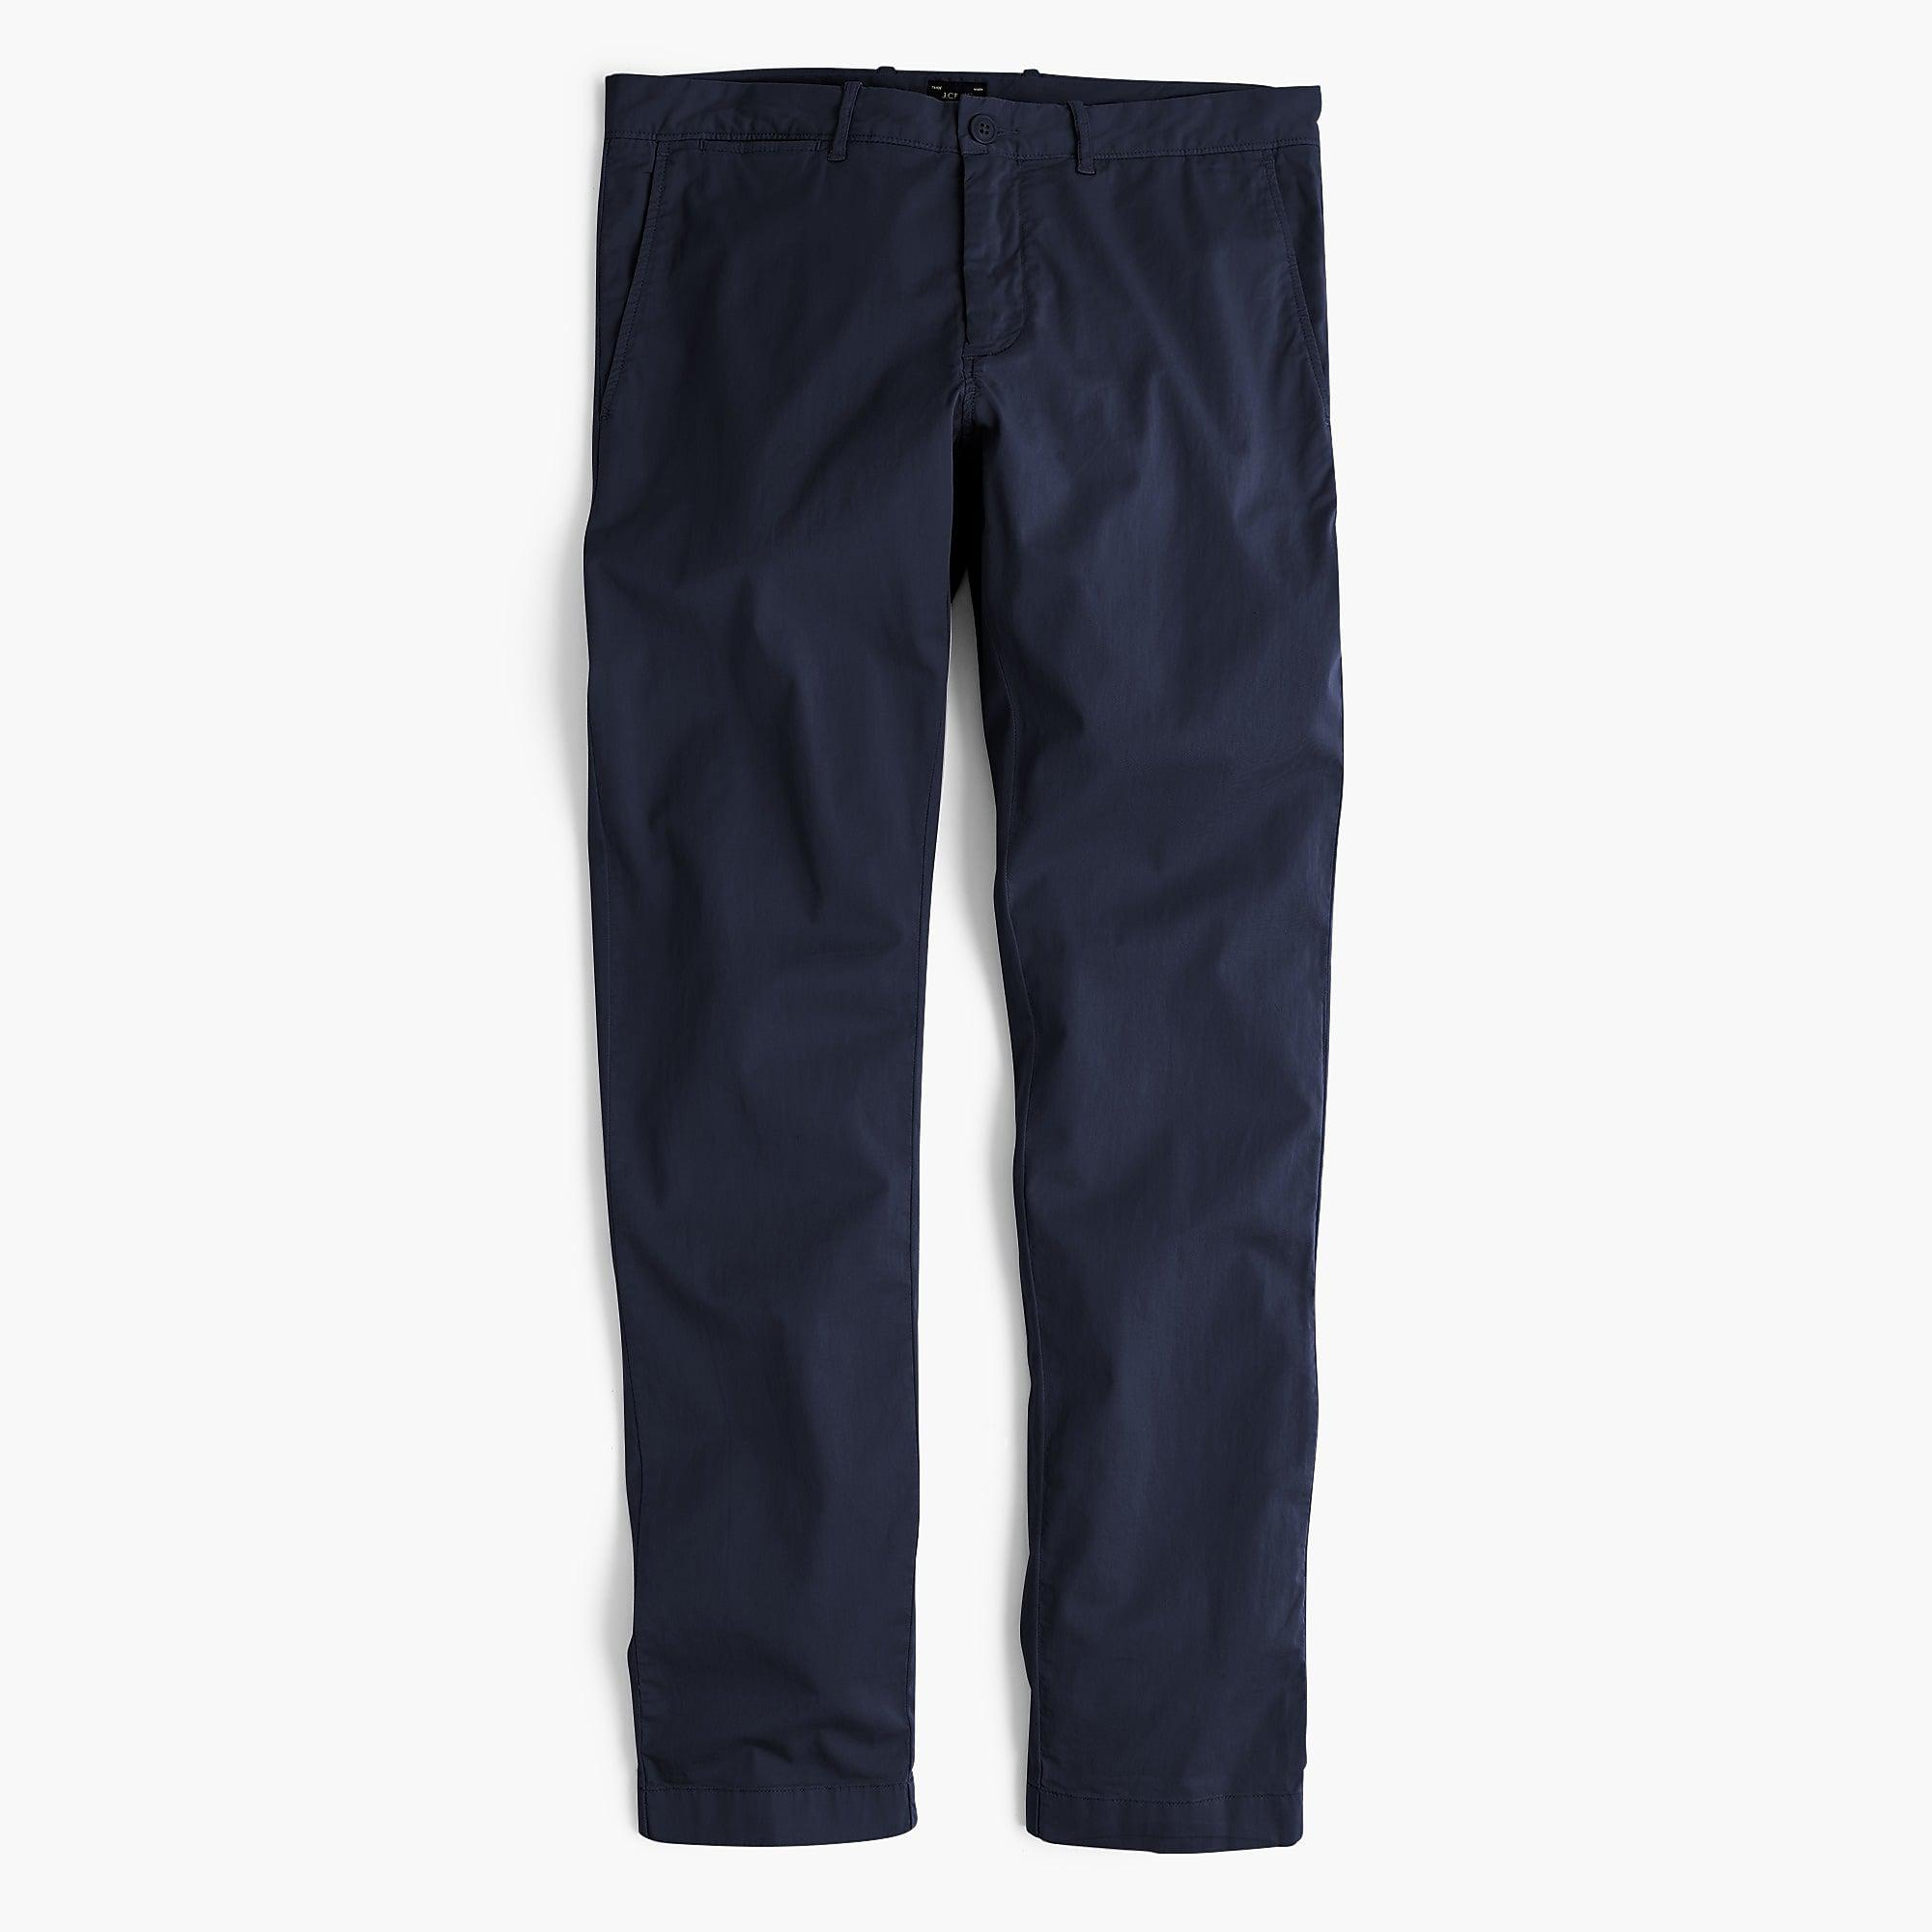 54ea633e9d22 Lyst - J.Crew 484 Slim-fit Lightweight Garment-dyed Stretch Chino in ...